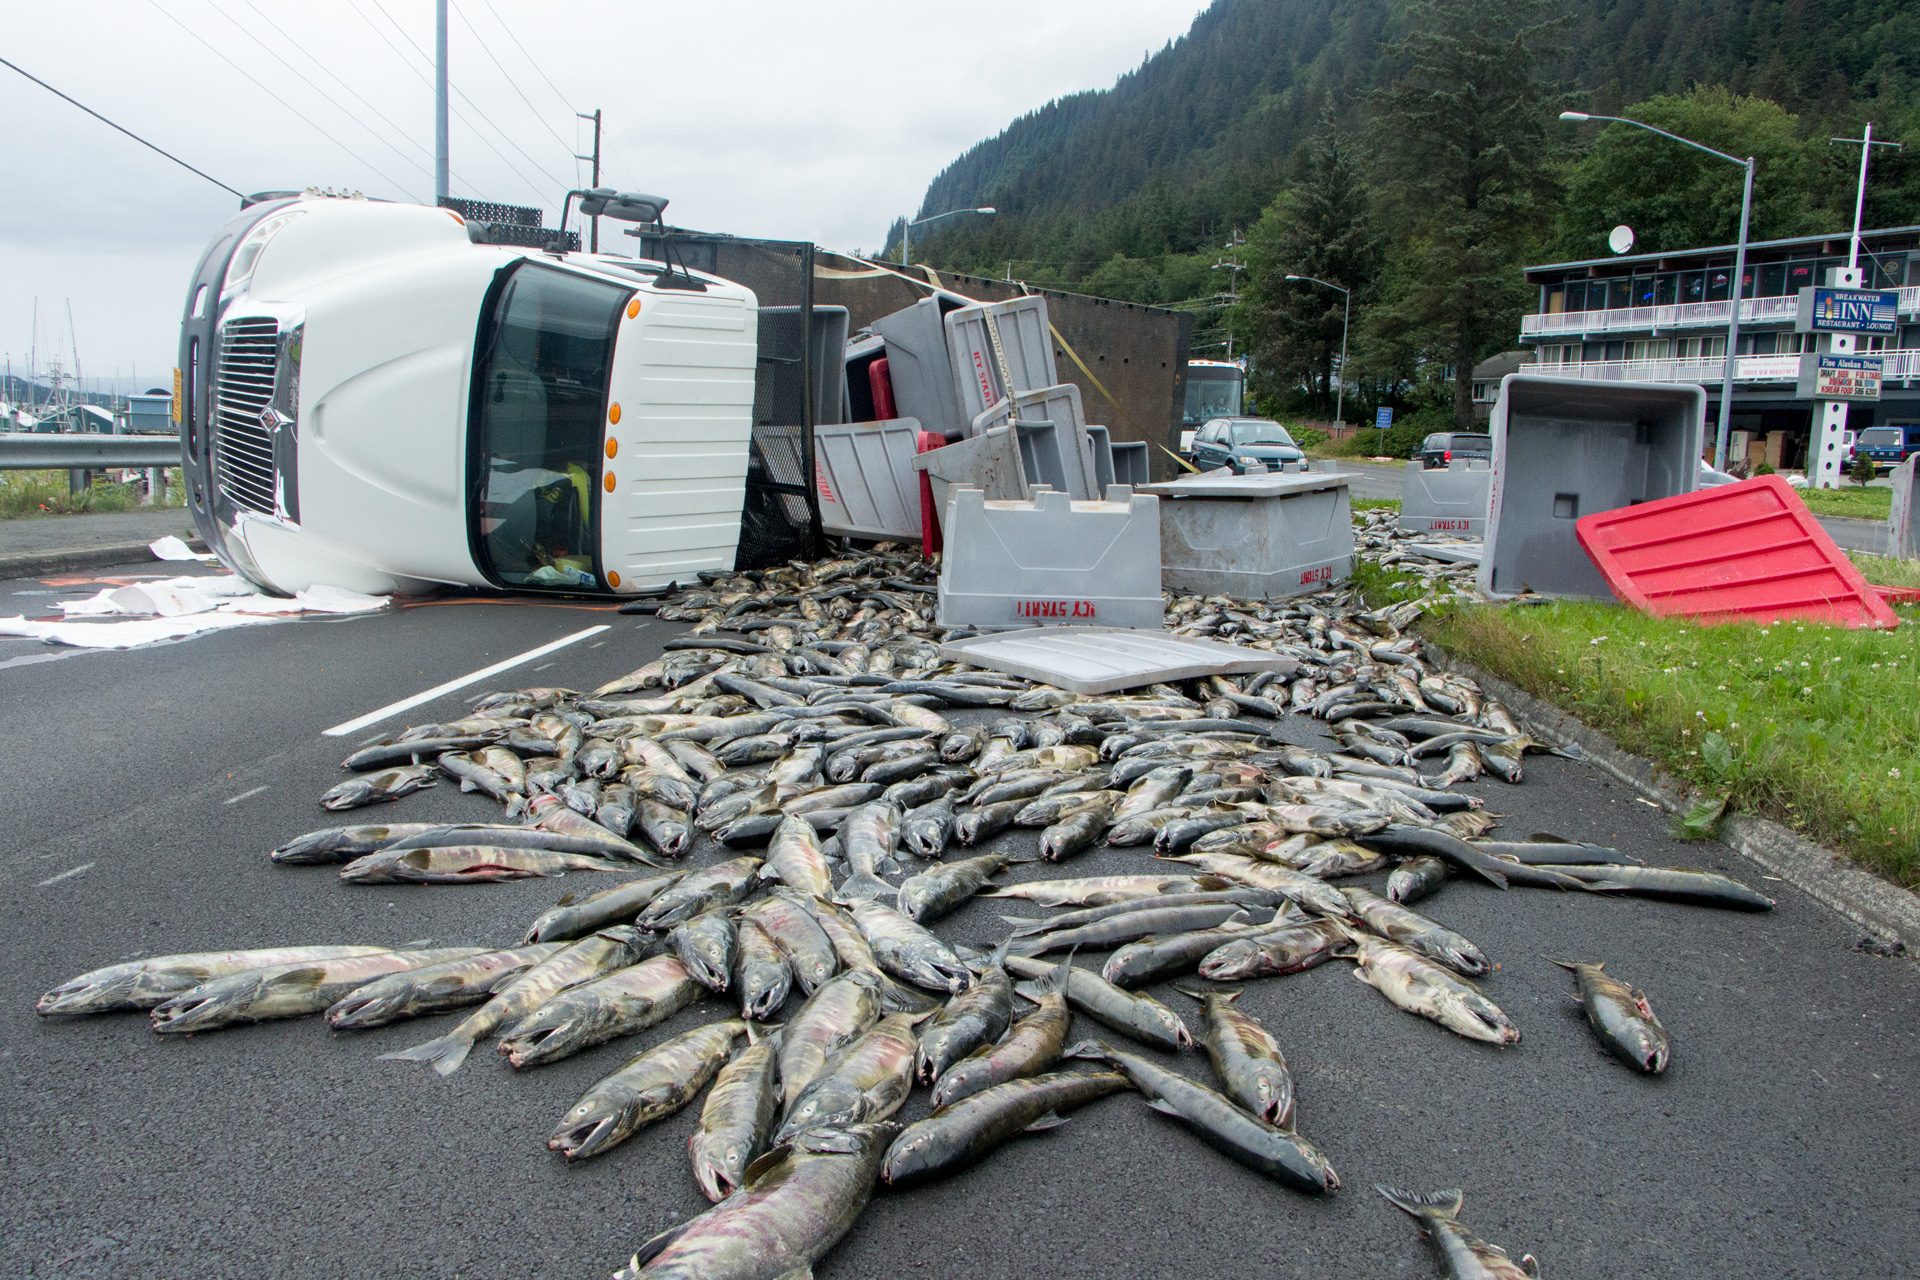 16,000lbs of salmon spill from a rolled truck on Egan Drive on July 25th, 2016. (Photo by Mikko Wilson, KTOO - Juneau)